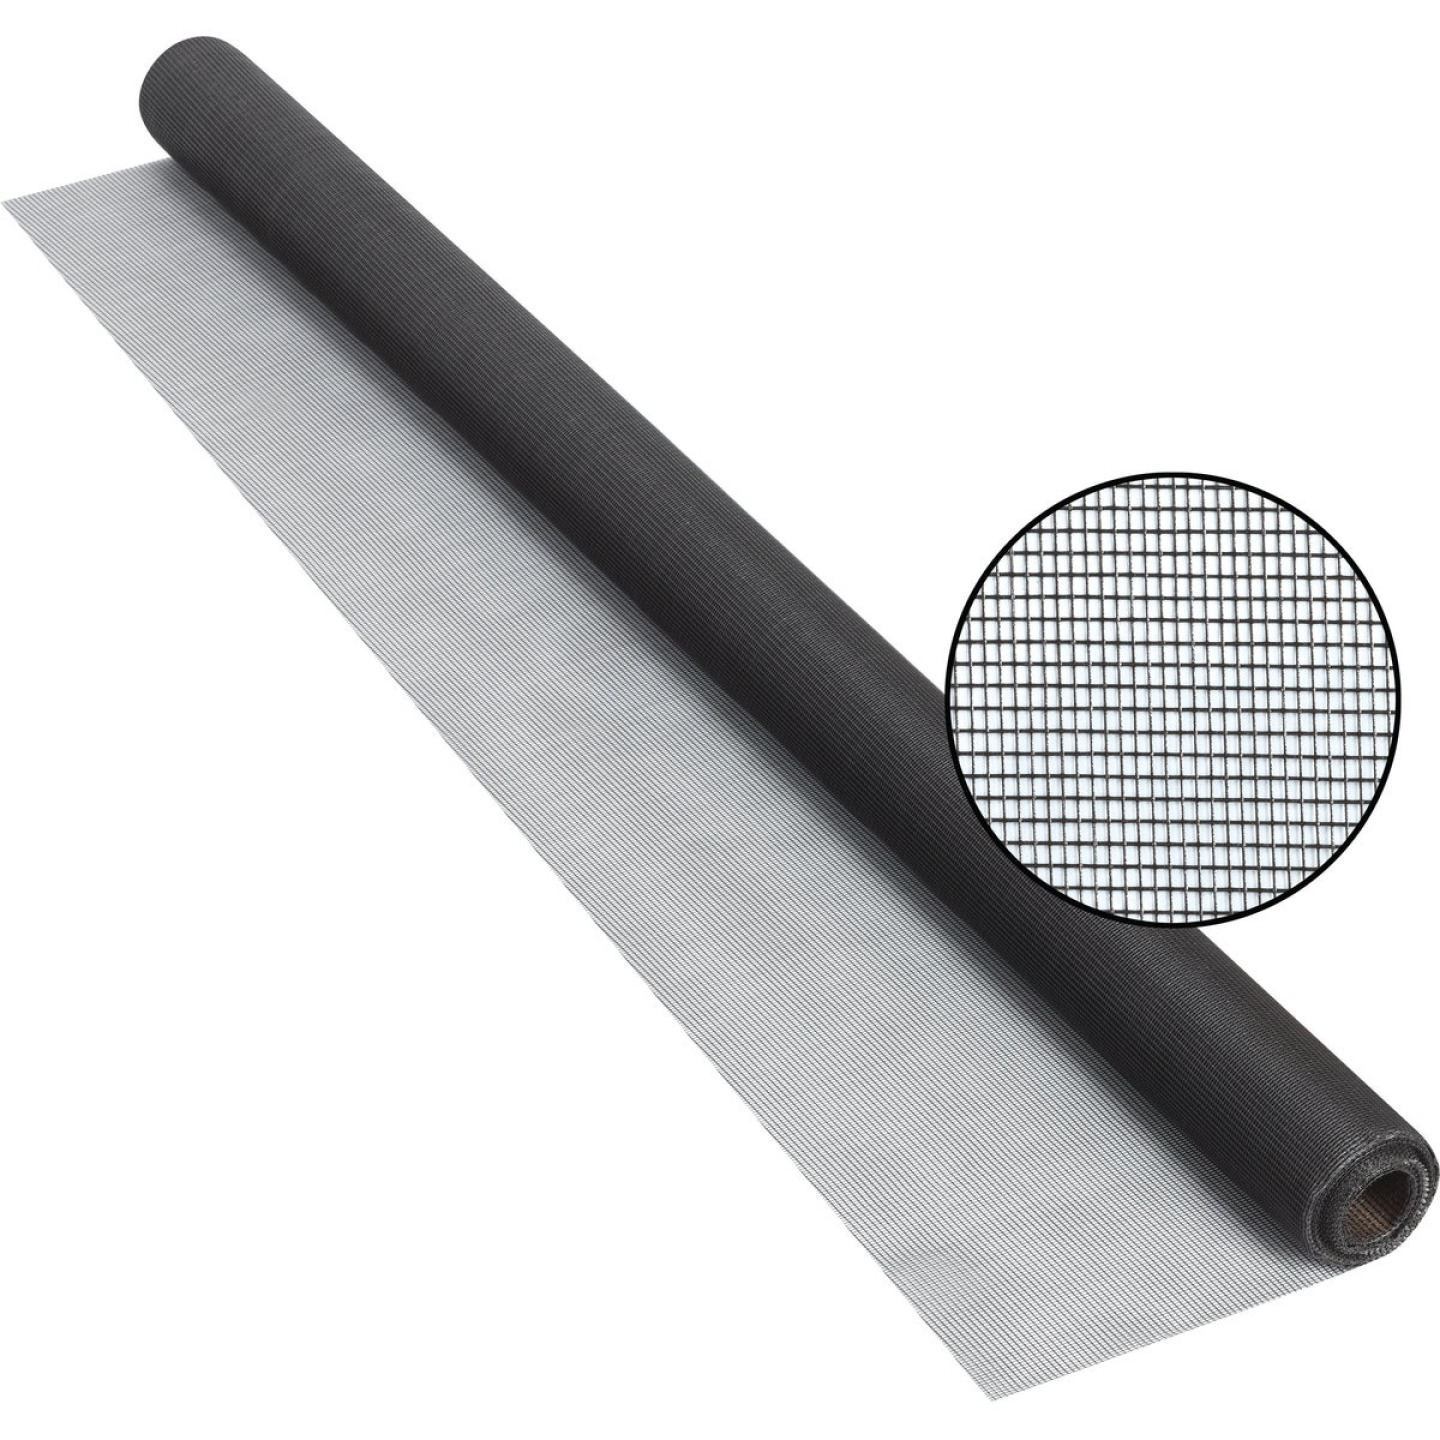 Phifer 30 In. x 25 Ft. Charcoal Fiberglass Screen Cloth Image 1